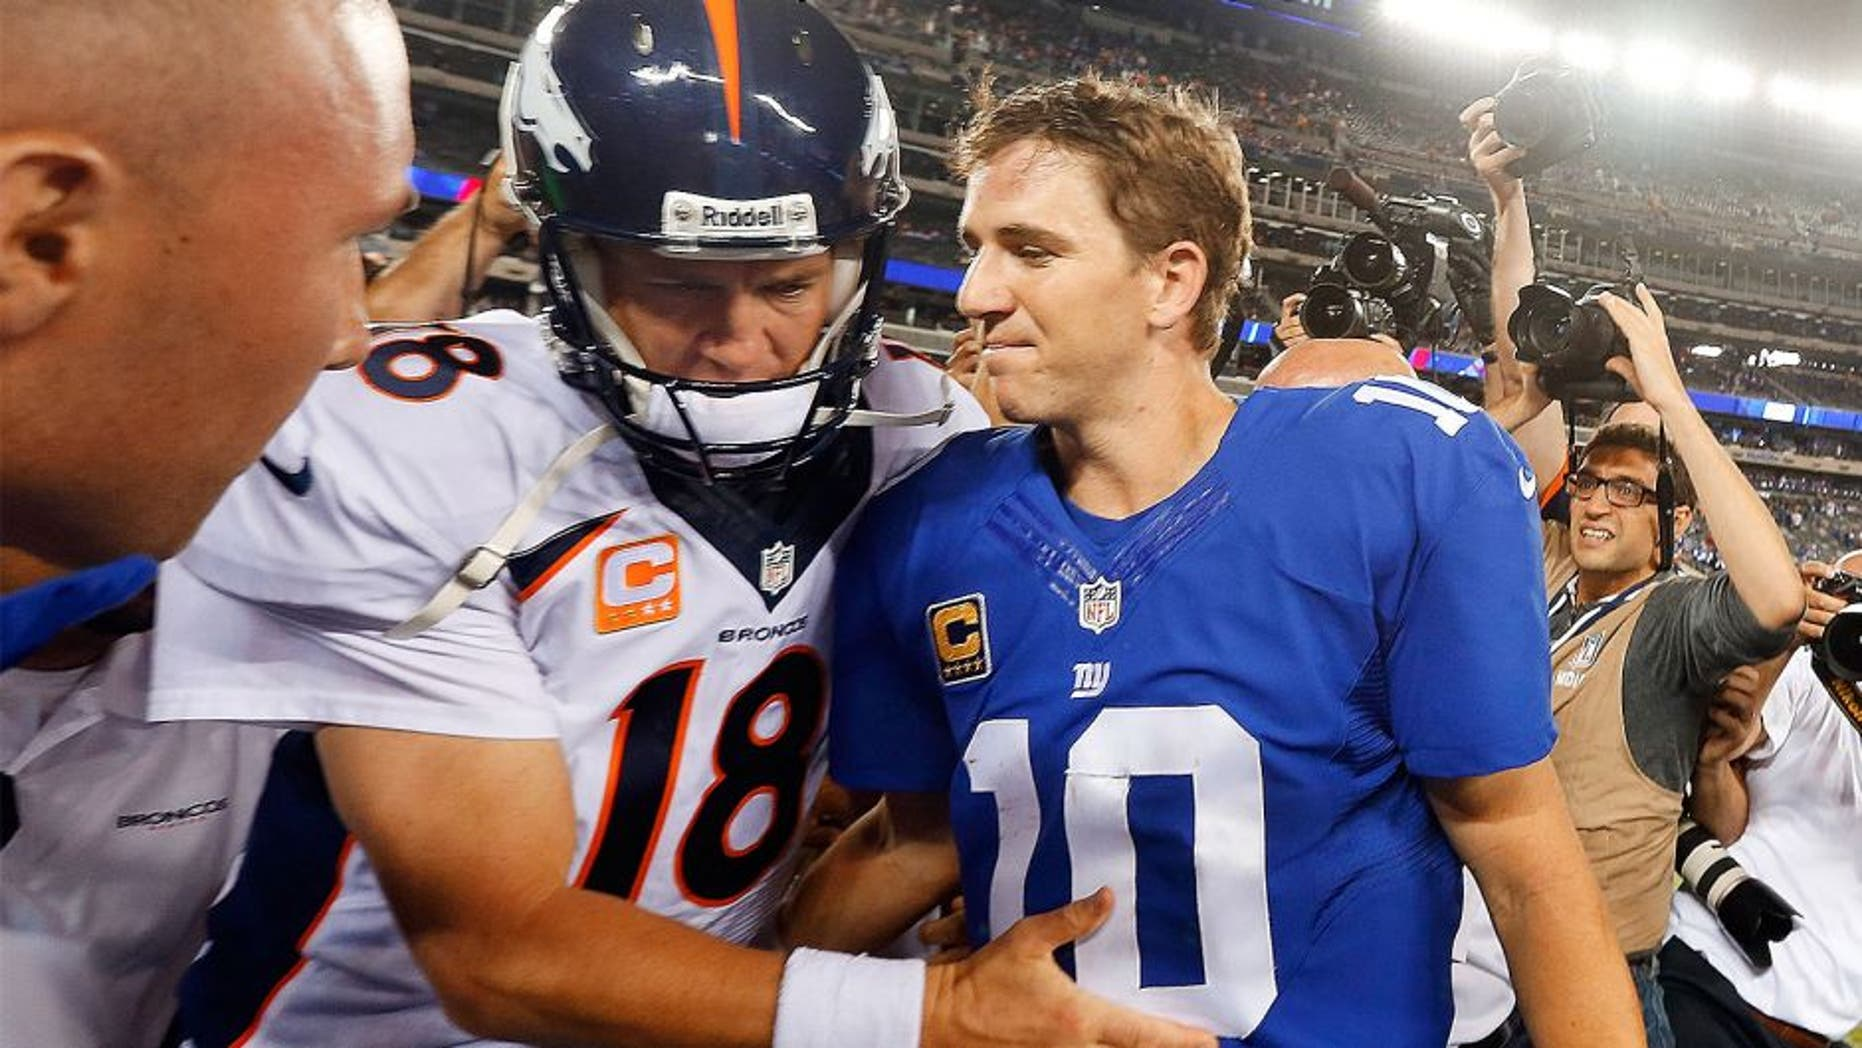 EAST RUTHERFORD, NJ - SEPTEMBER 15: (NEW YORK DAILIES OUT) Quarterbacks Peyton Manning #18 of the Denver Broncos and Eli Manning #10 of the New York Giants meet after their game on September 15, 2013 at MetLife Stadium in East Rutherford, New Jersey. The Broncos defeated the Giants 41-23. (Photo by Jim McIsaac/Getty Images) *** Local Caption *** Peyton Manning; Eli Manning